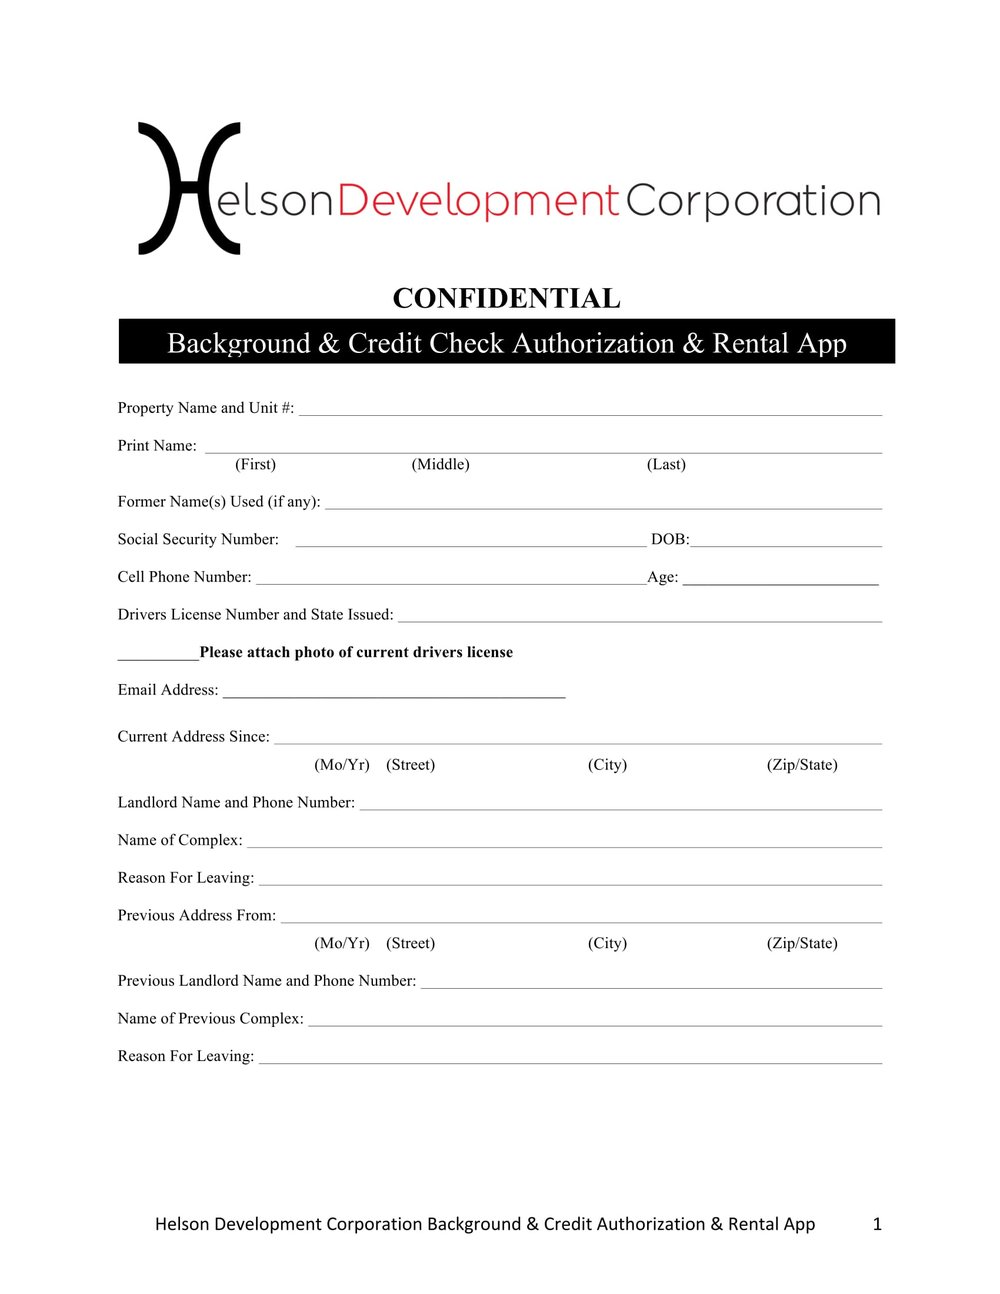 HDC Background & Credit Authorization & Rental App-1.jpg